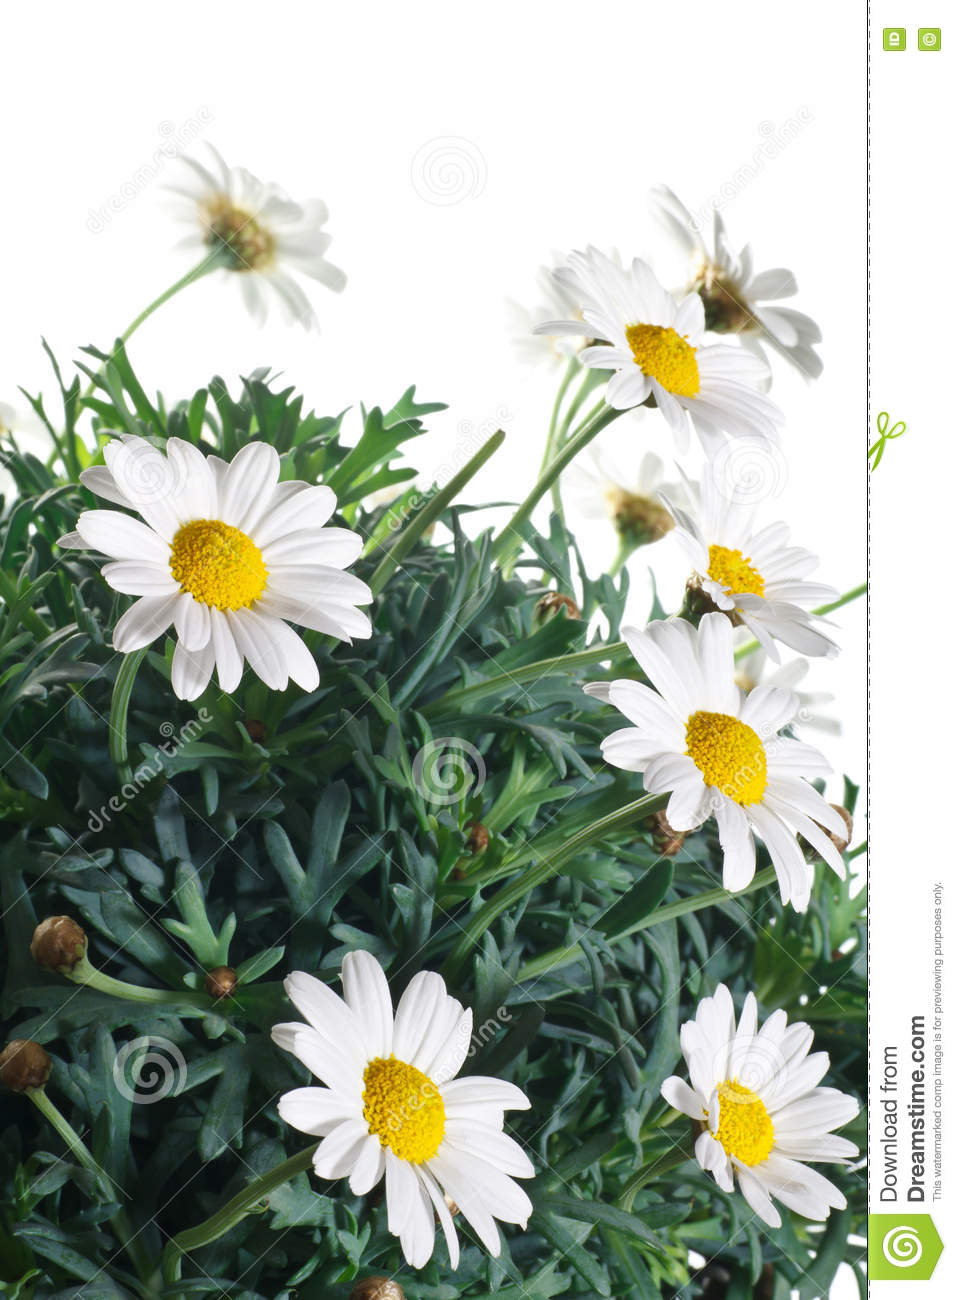 Daisy flowers and leaves stock image image of gardening 73298957 daisy flowers and leaves izmirmasajfo